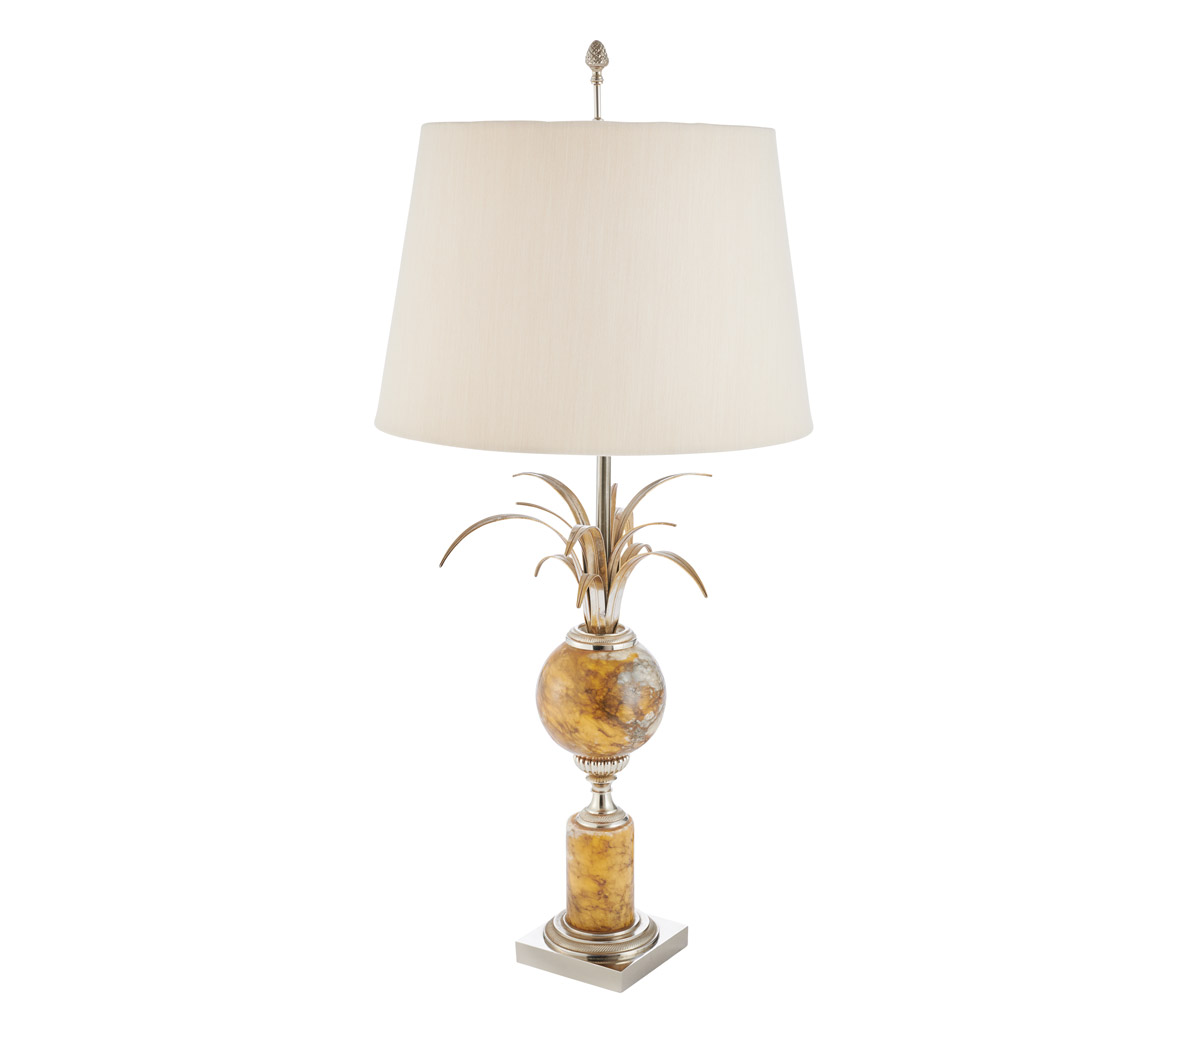 A vintage Maison Charles lamp from Travis and Company